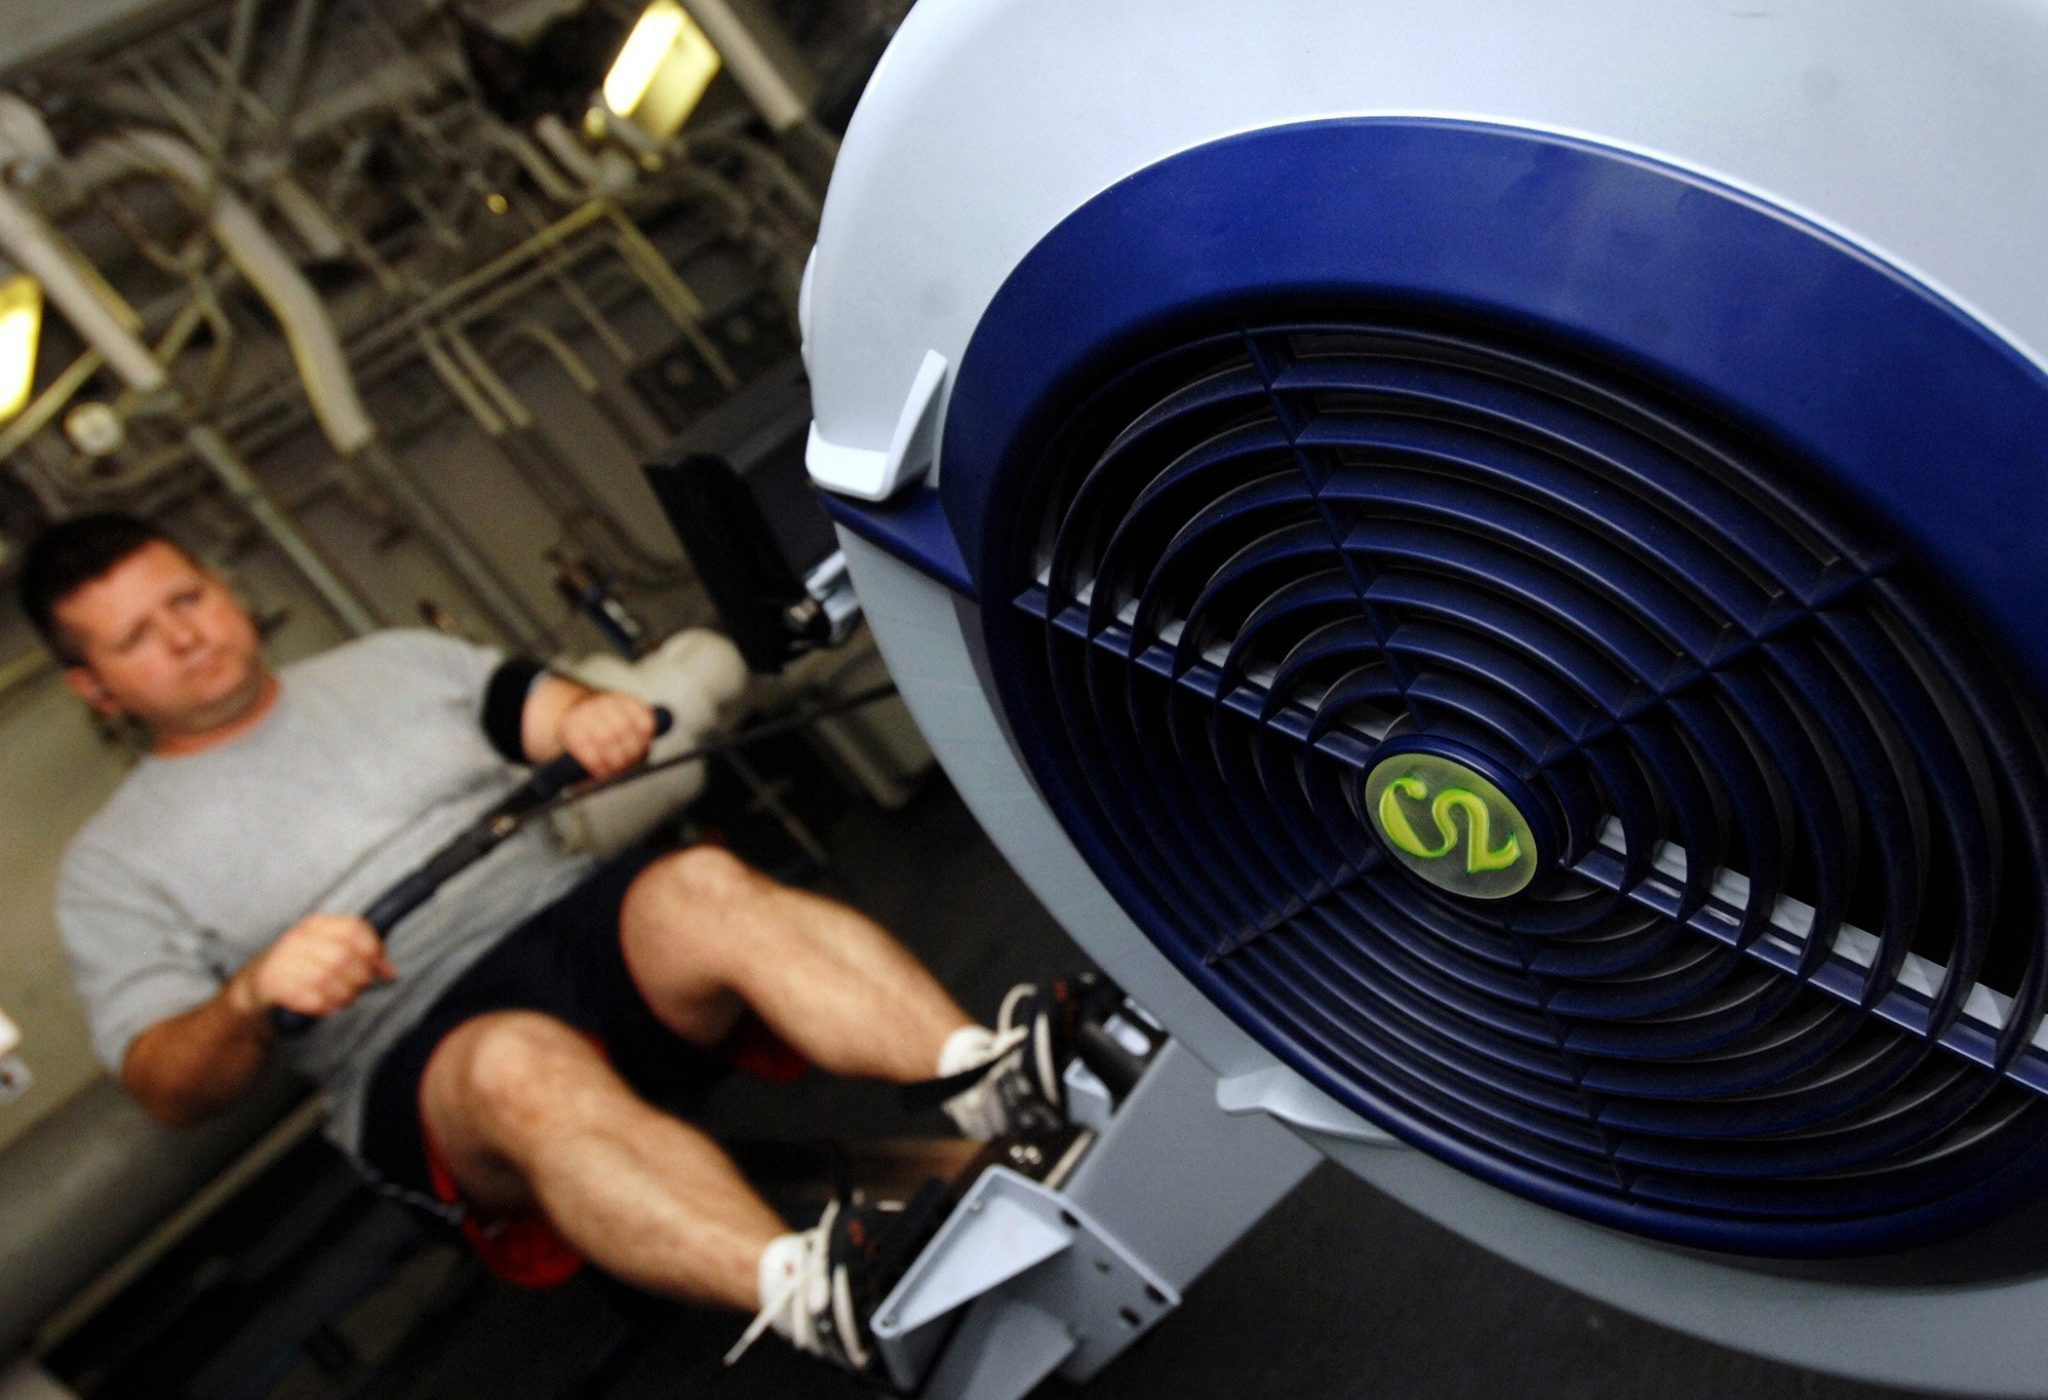 Indoor Rowing is more than just cardio